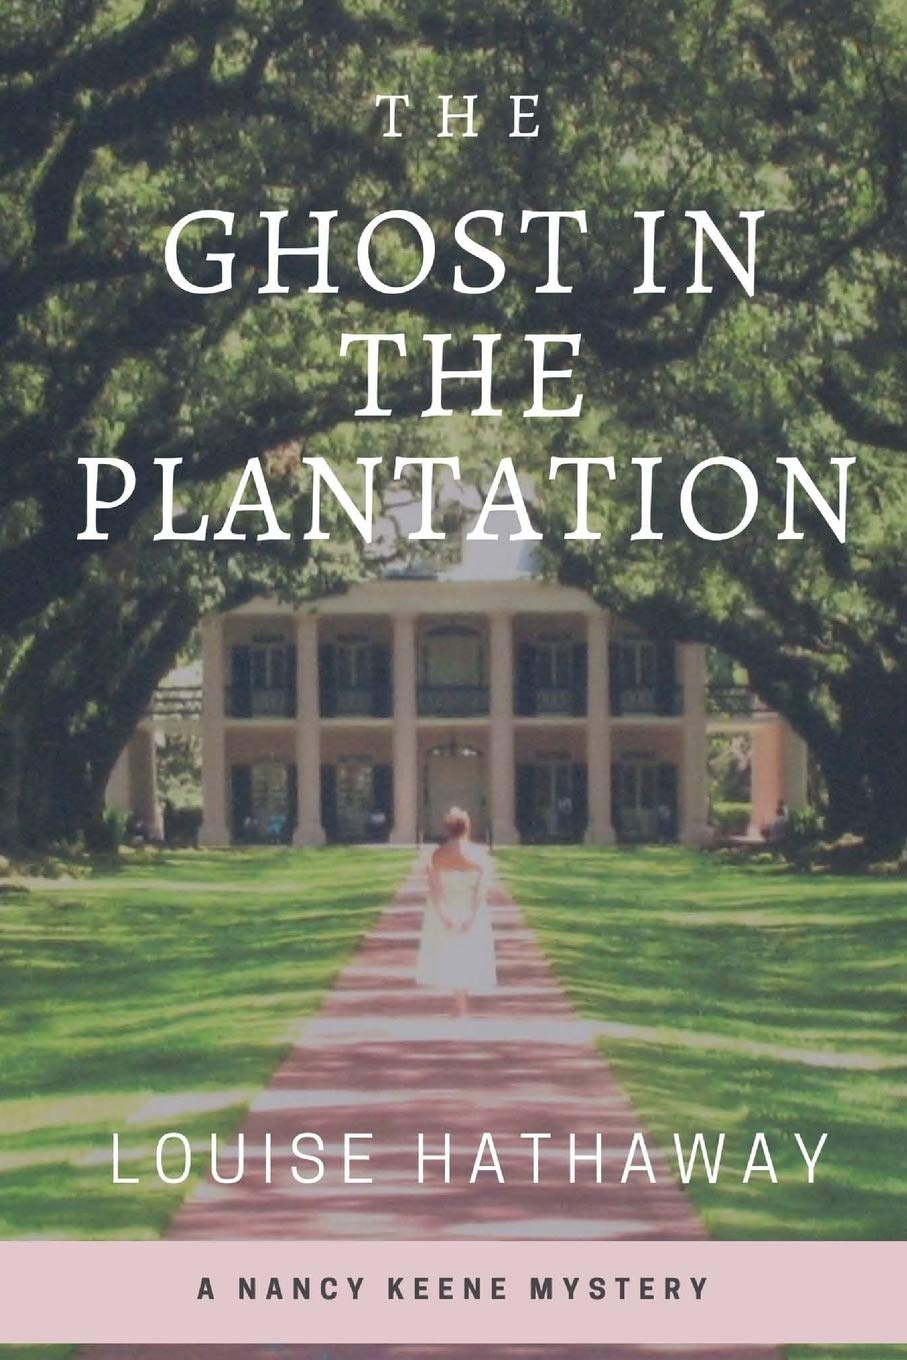 The Ghost in the Plantation: A Nancy Keene Mystery PDF